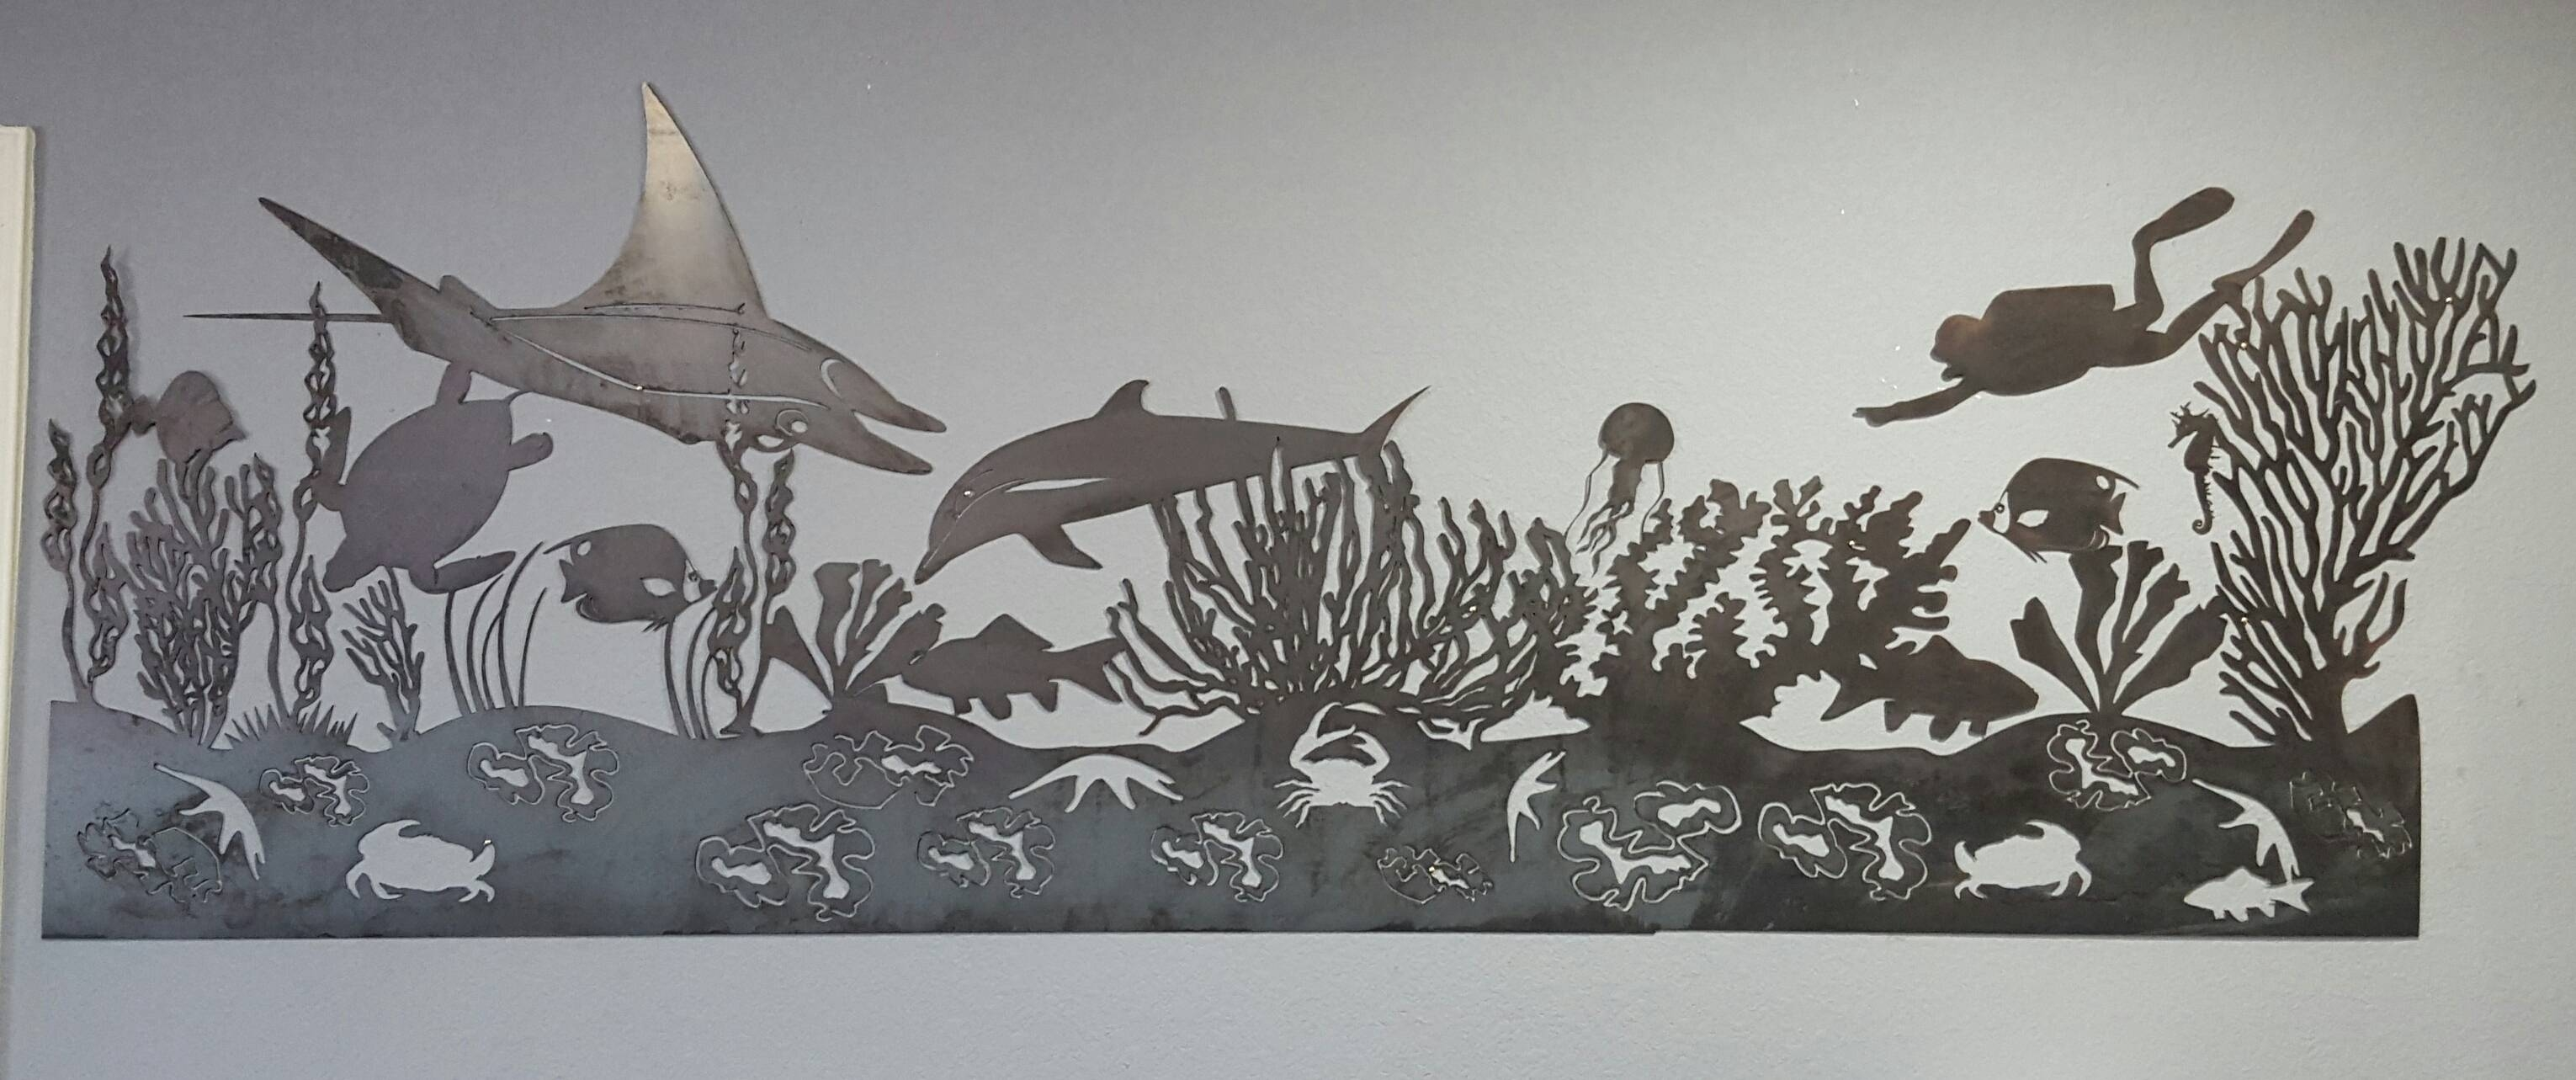 Sea Life Mural Metal Wall Art | Blue Collar Welding Llc For Latest Metal Animal Wall Art (View 16 of 20)